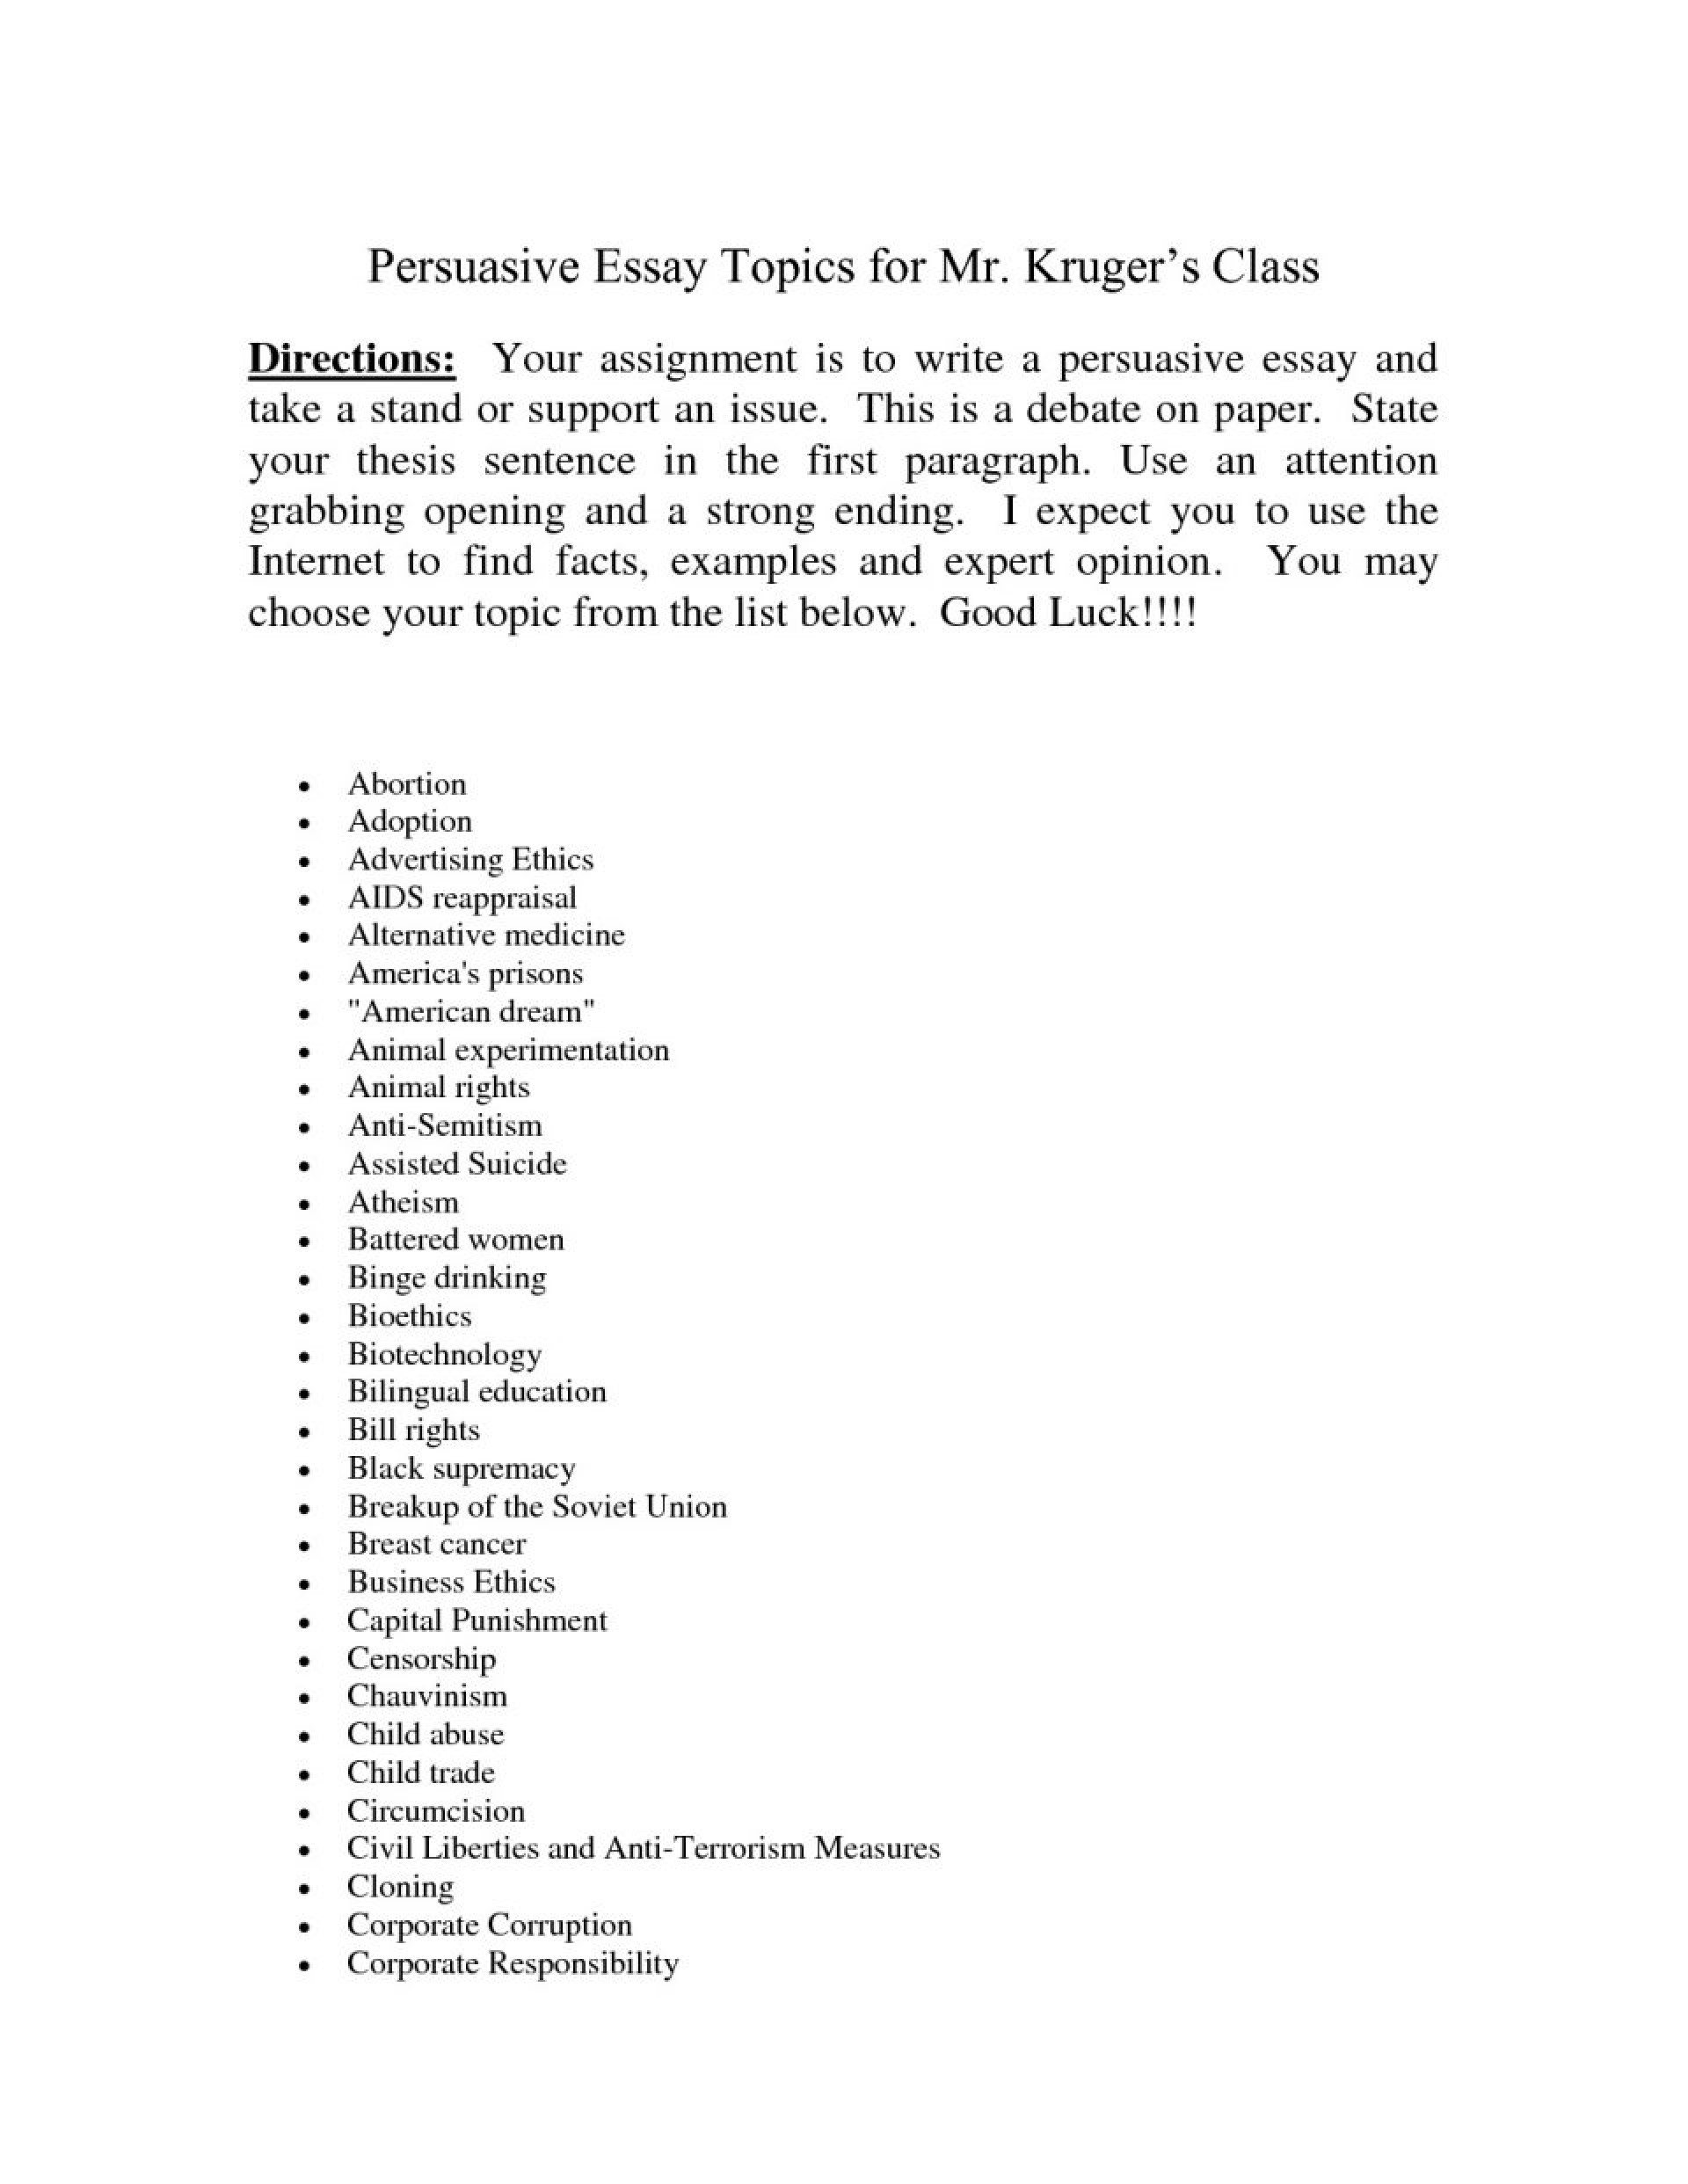 010 Topics Forlege Research Papers Topic Essay Barca Fontanacountryinn Within Good Persuasive Narrative To Write Abo Easy About Personal Descriptive Paper Informative Synthesis Stirring For College Controversial Debatable 1920